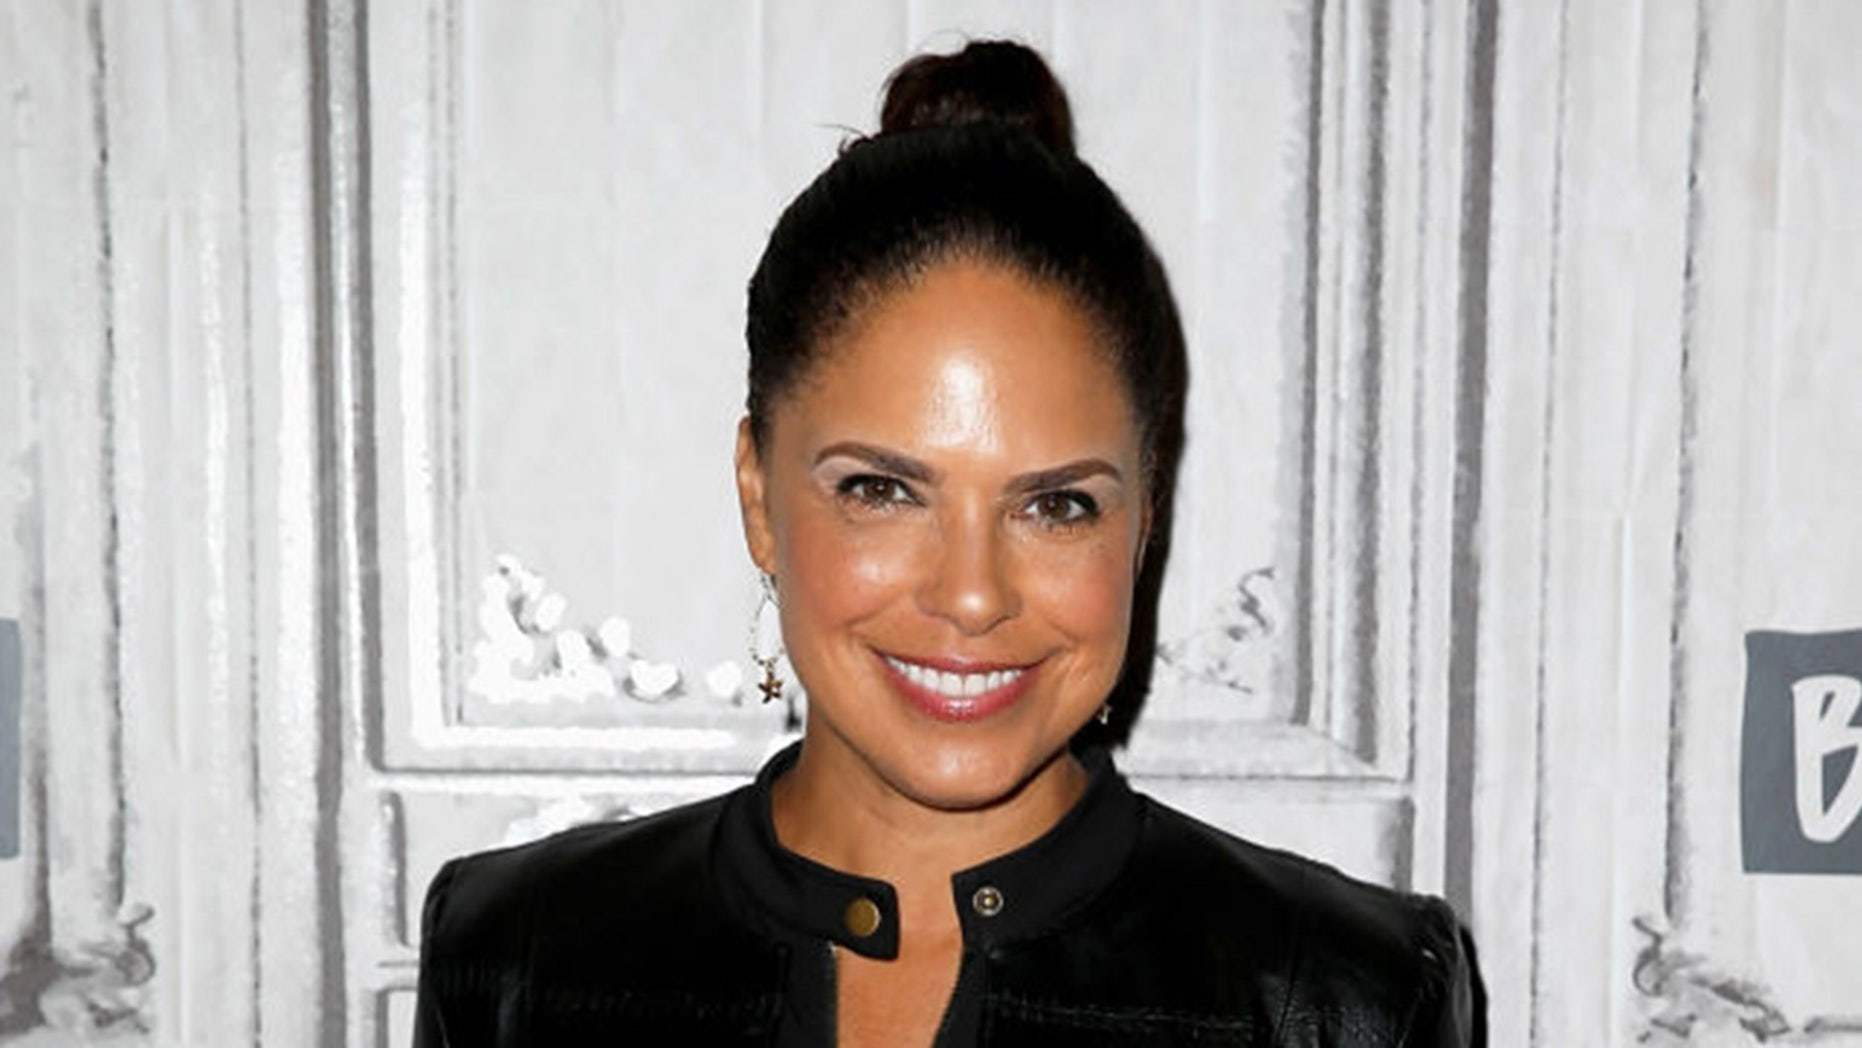 Westlake Legal Group Soledad-OBrien-1 Soledad O'Brien slams CNN over its headline asking 'how black' will royal baby be fox-news/entertainment/media fox news fnc/entertainment fnc Brian Flood article 47f85755-456d-5903-9c6a-e5f2569319c4